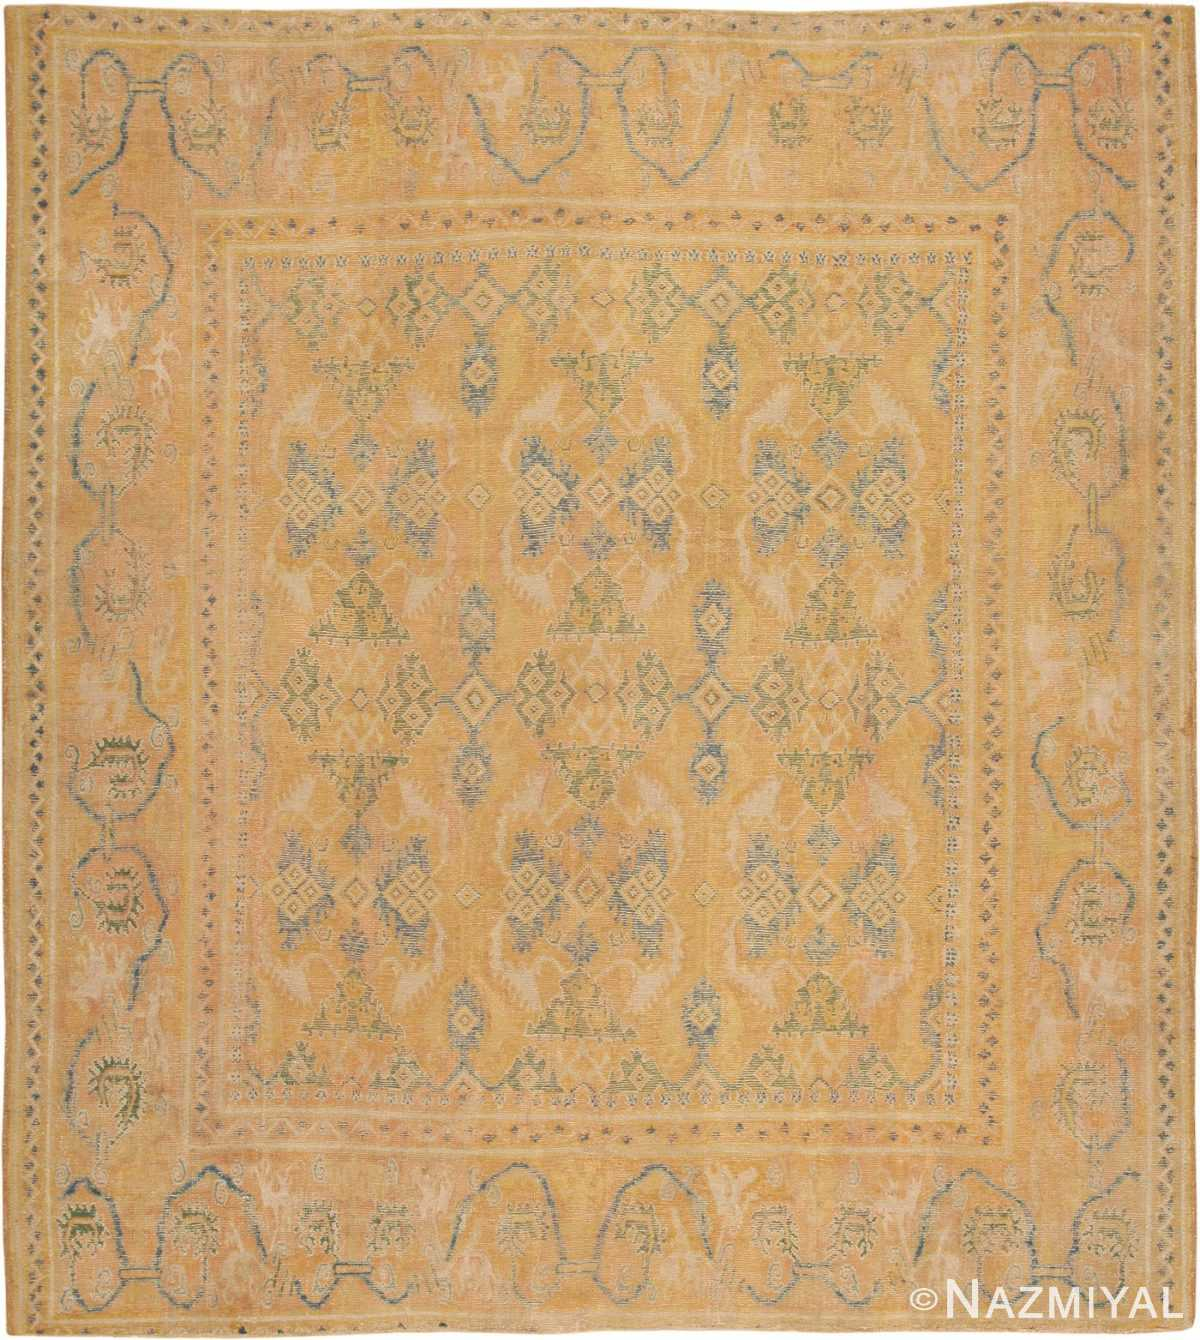 Antique 17th Century Spanish Cuenca Carpet 47370 Large Image